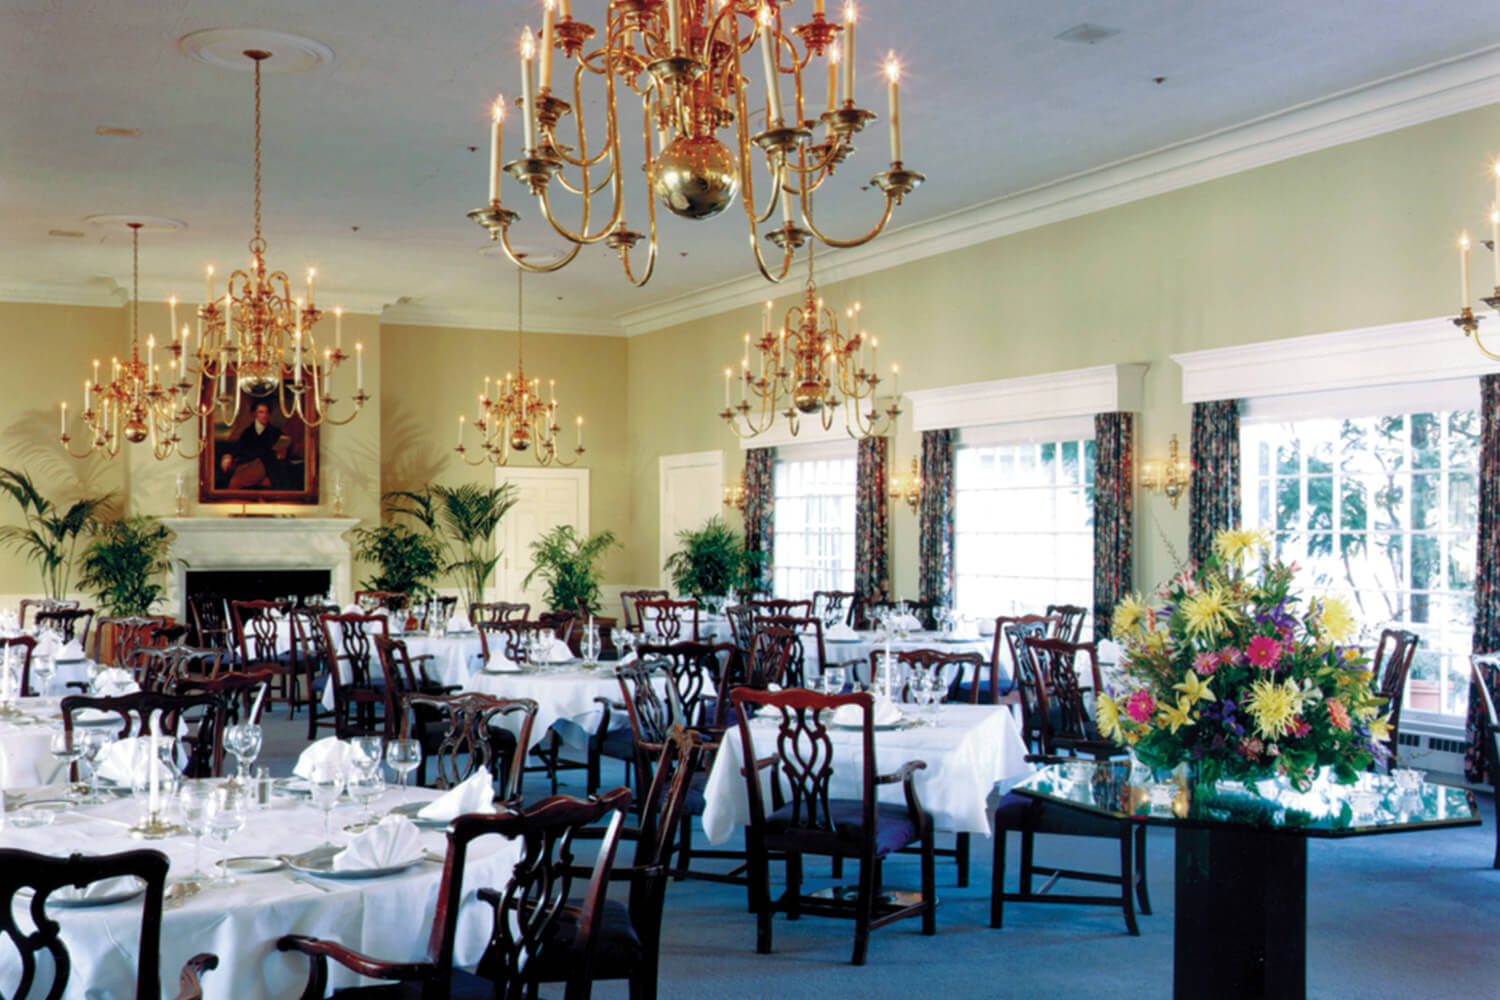 Westmoreland Country Club dining room